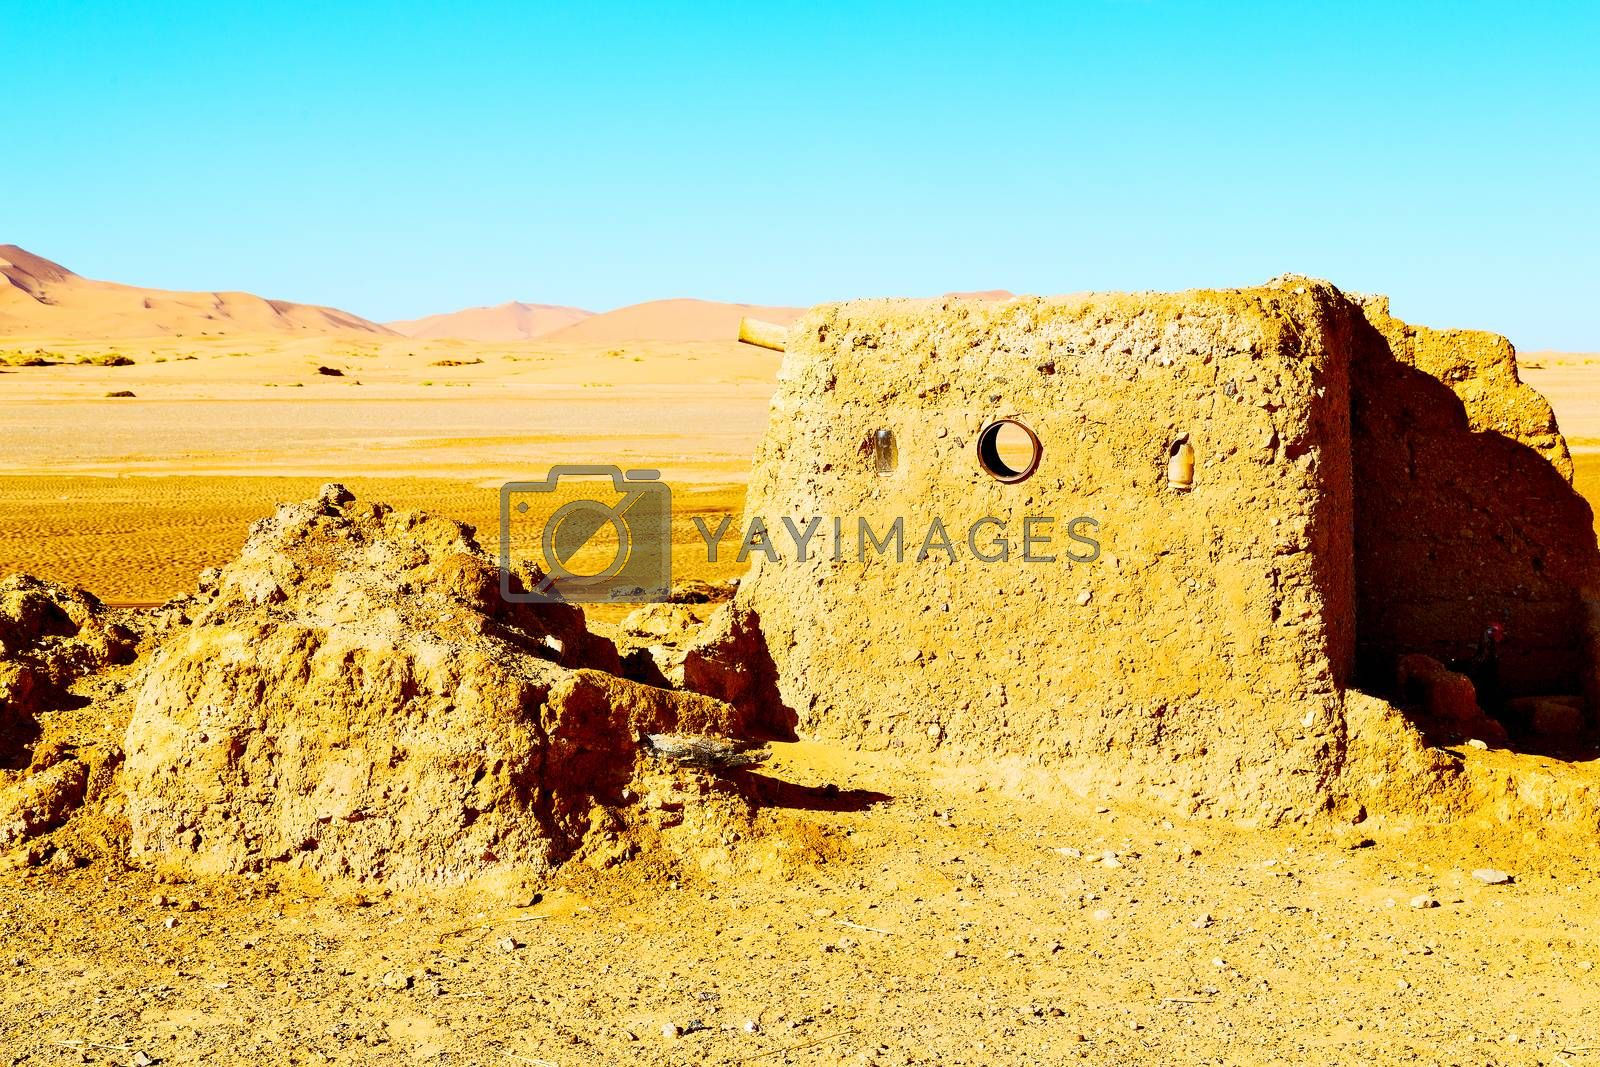 sahara      africa in morocco  old    historical village  by lkpro